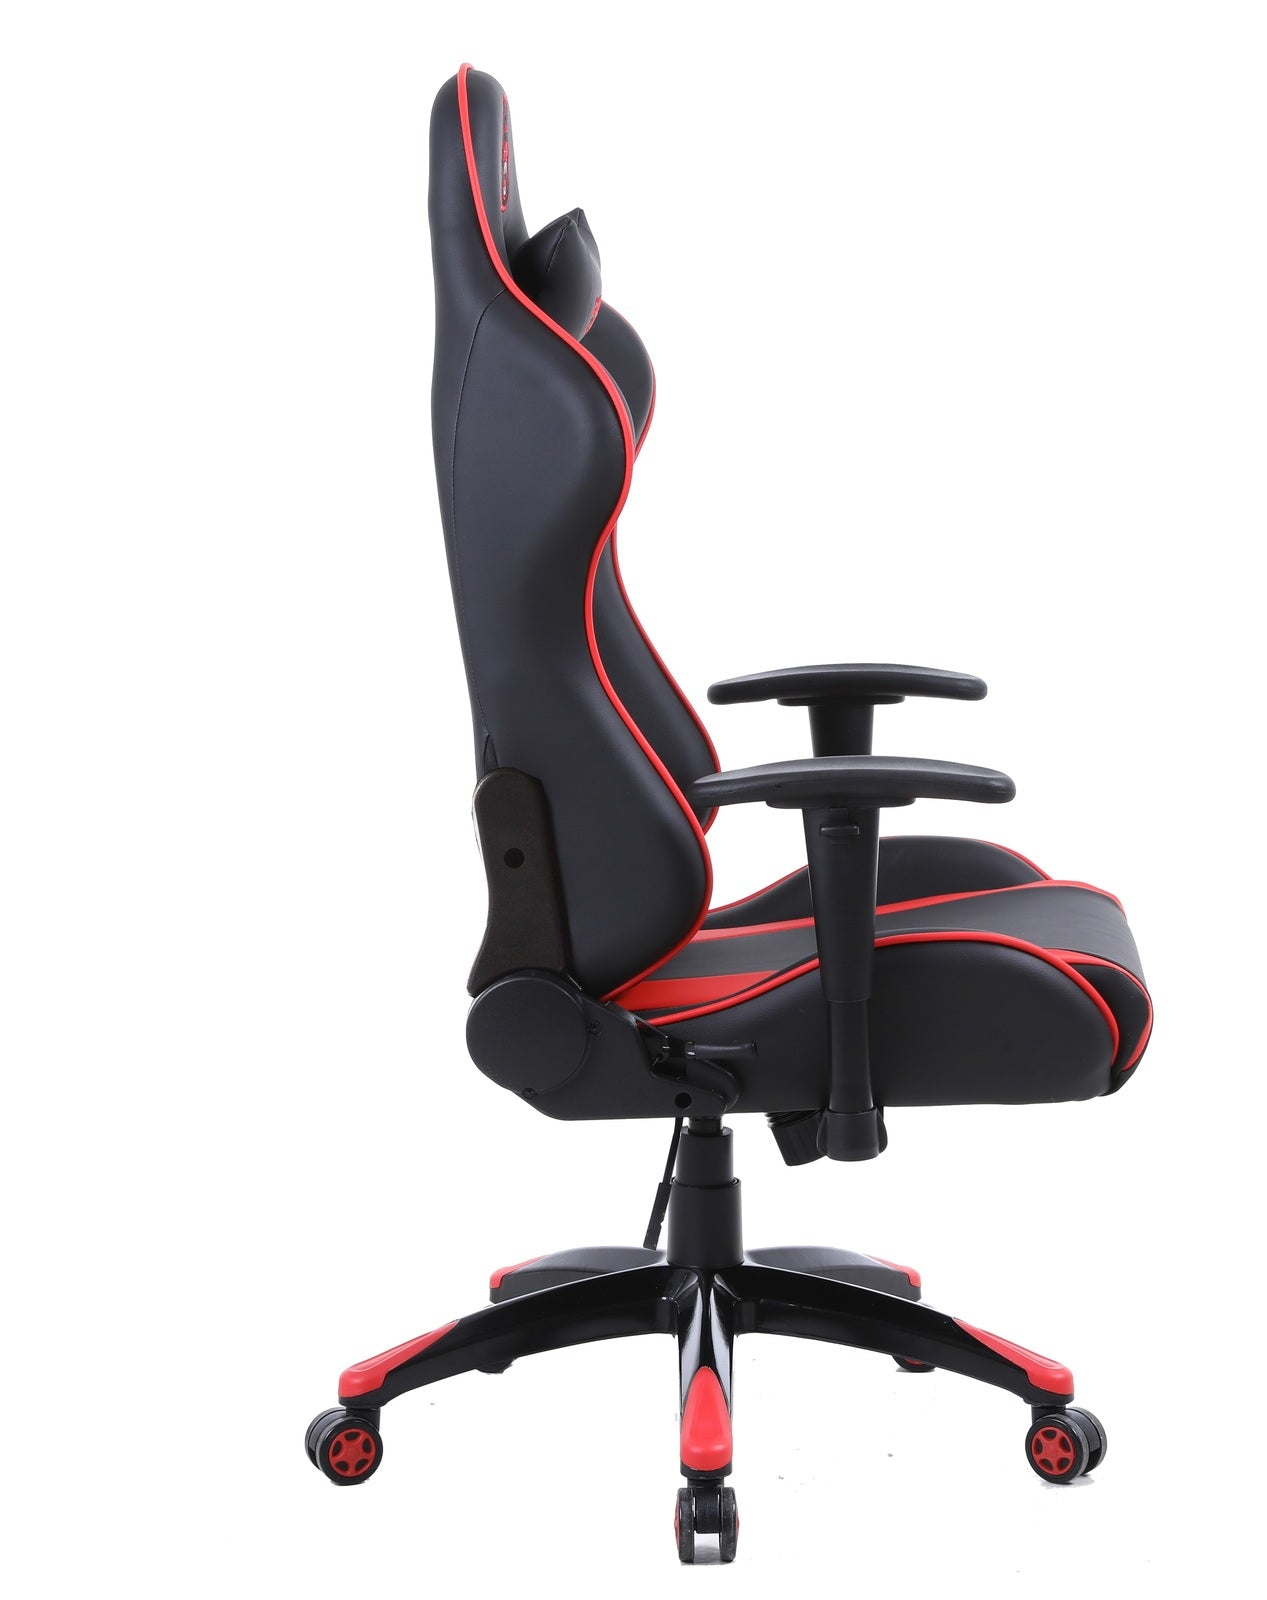 Gorilla Gaming Commander Chair - Red & Black